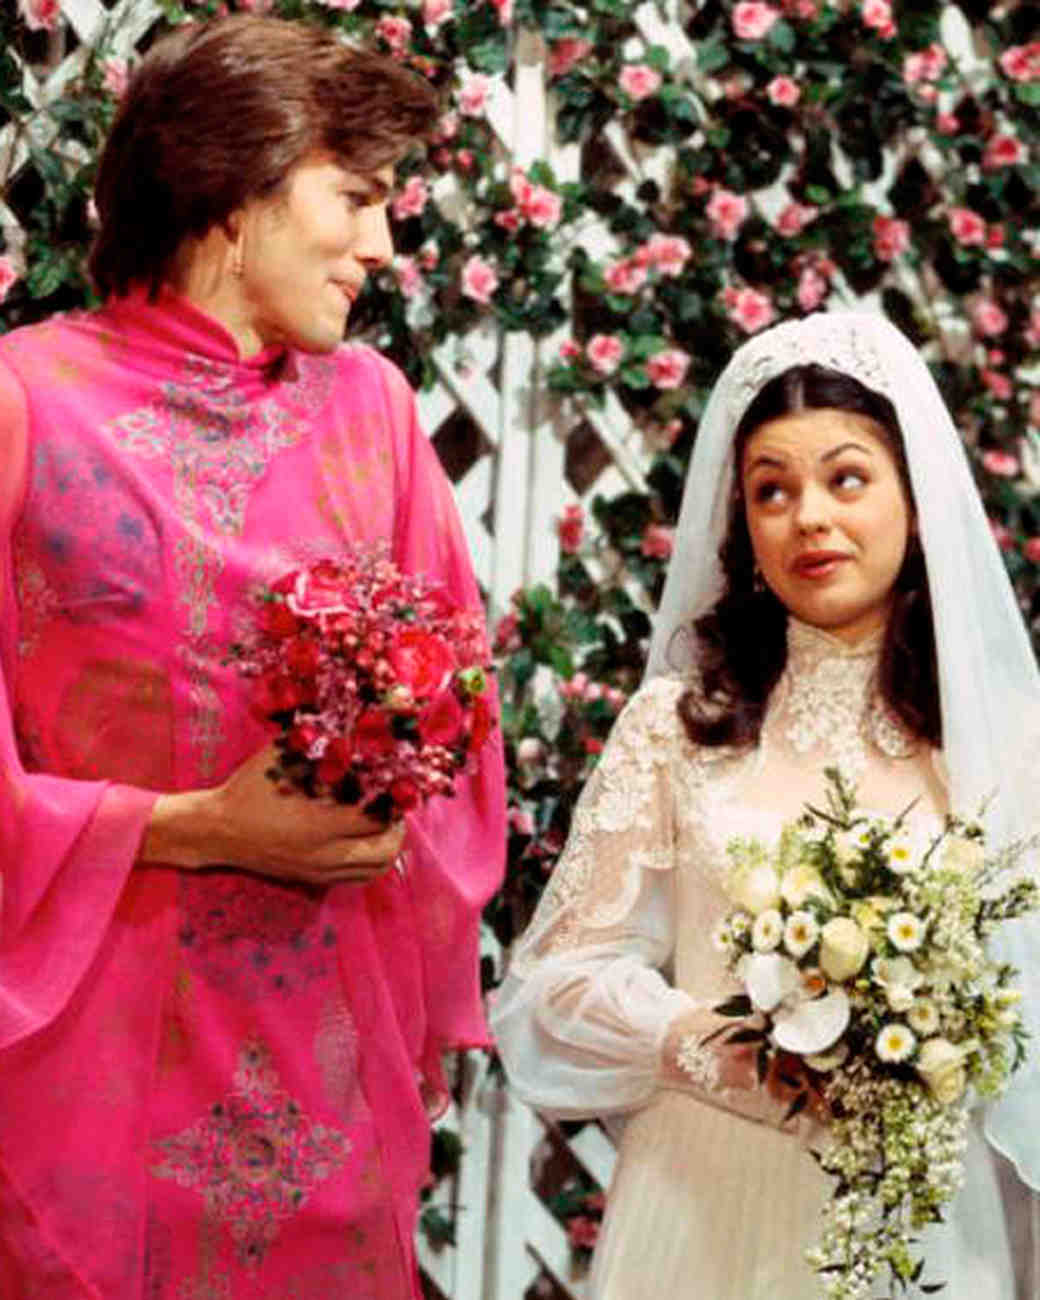 tv-wedding-dresses-that-70s-show-mila-kunis-ashton-kutcher-1115.jpg